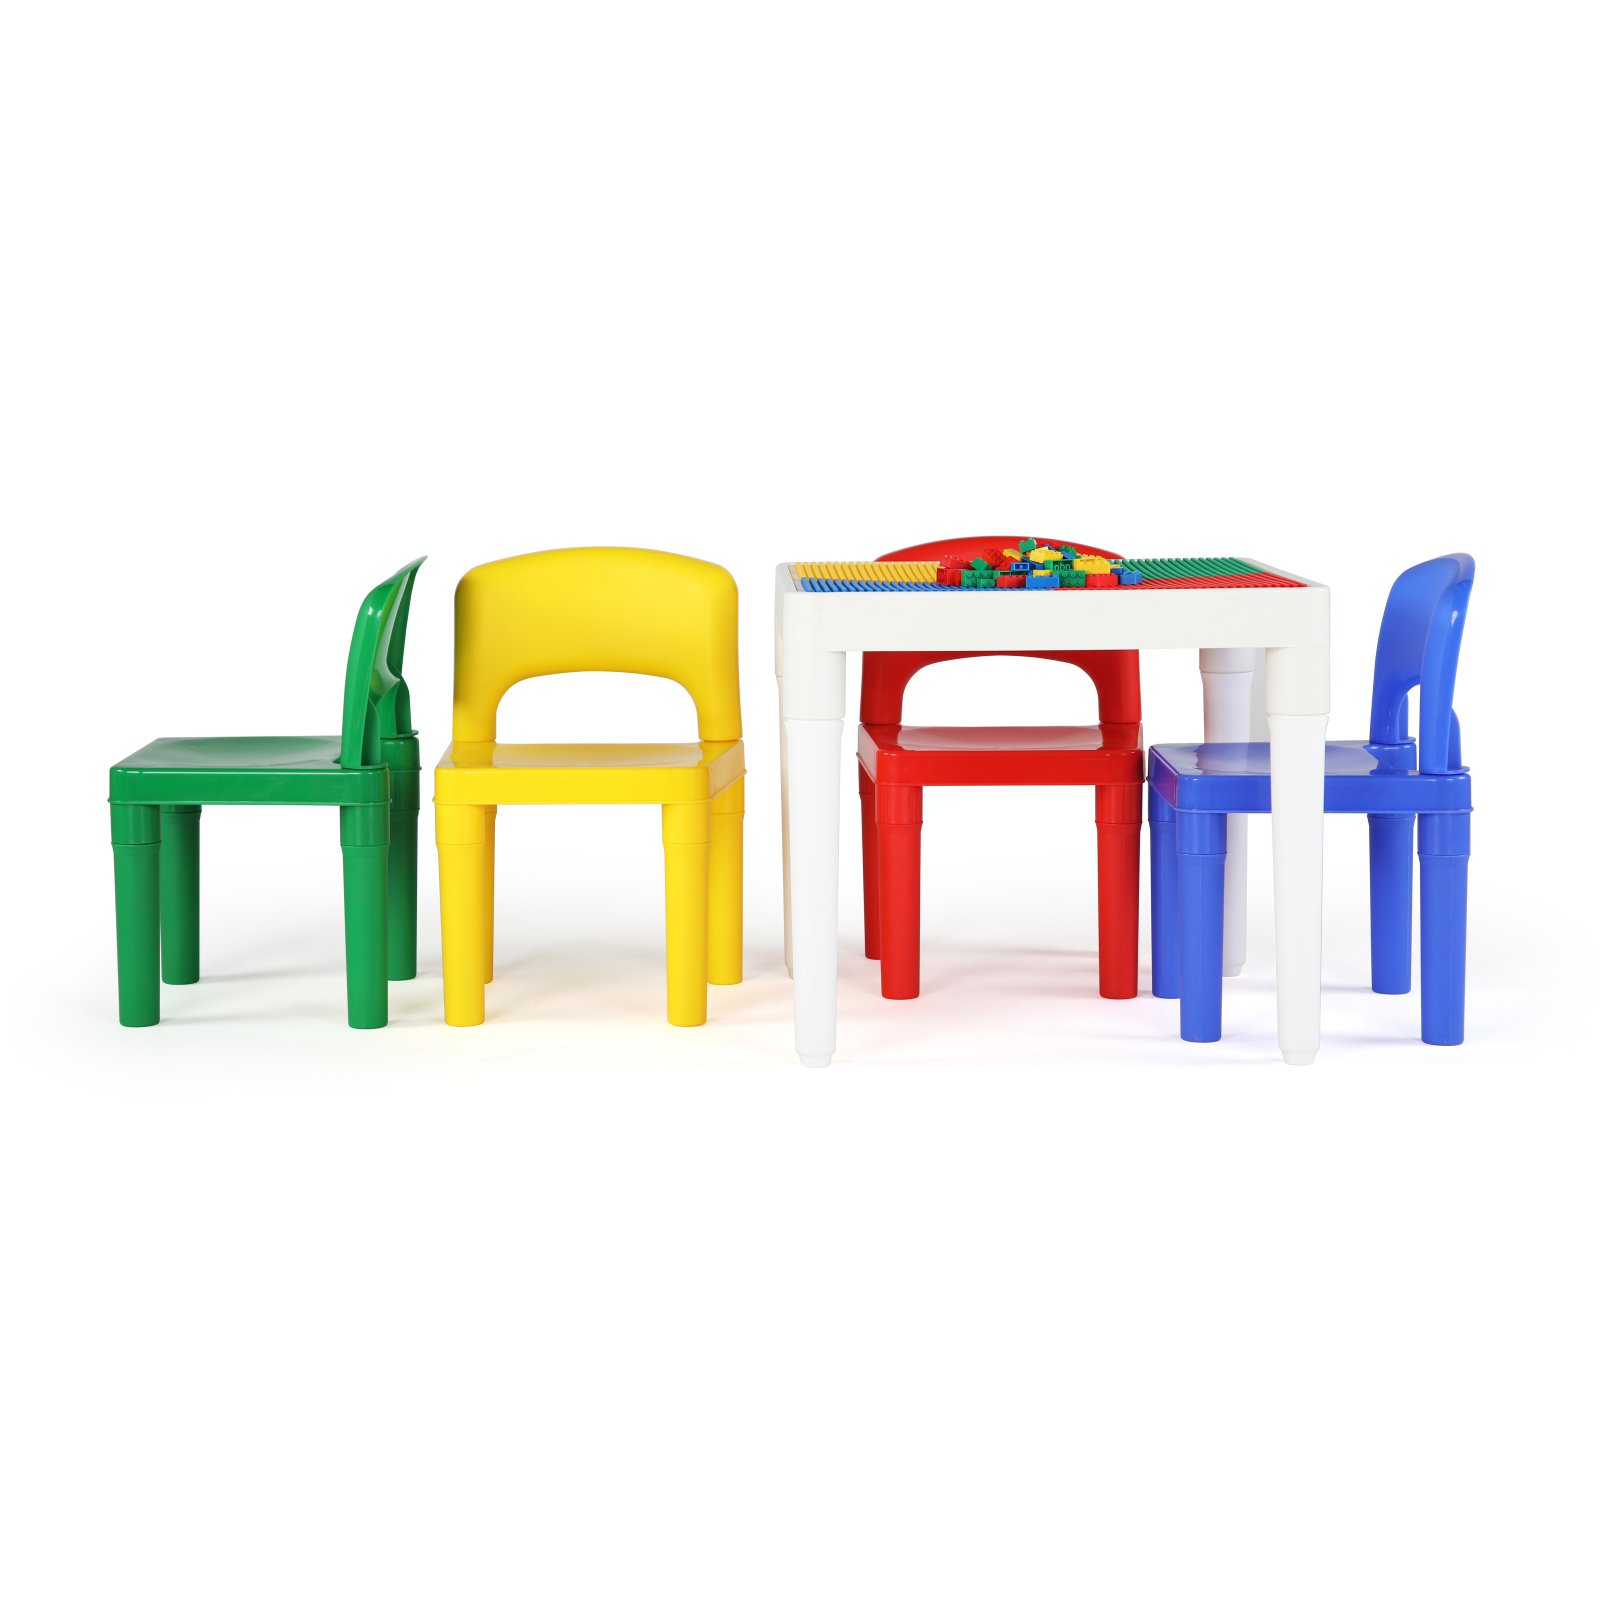 Tot Tutors 2-in-1 Plastic LEGO-Compatible Square Construction Table and 4 Chairs Set, White/Primary